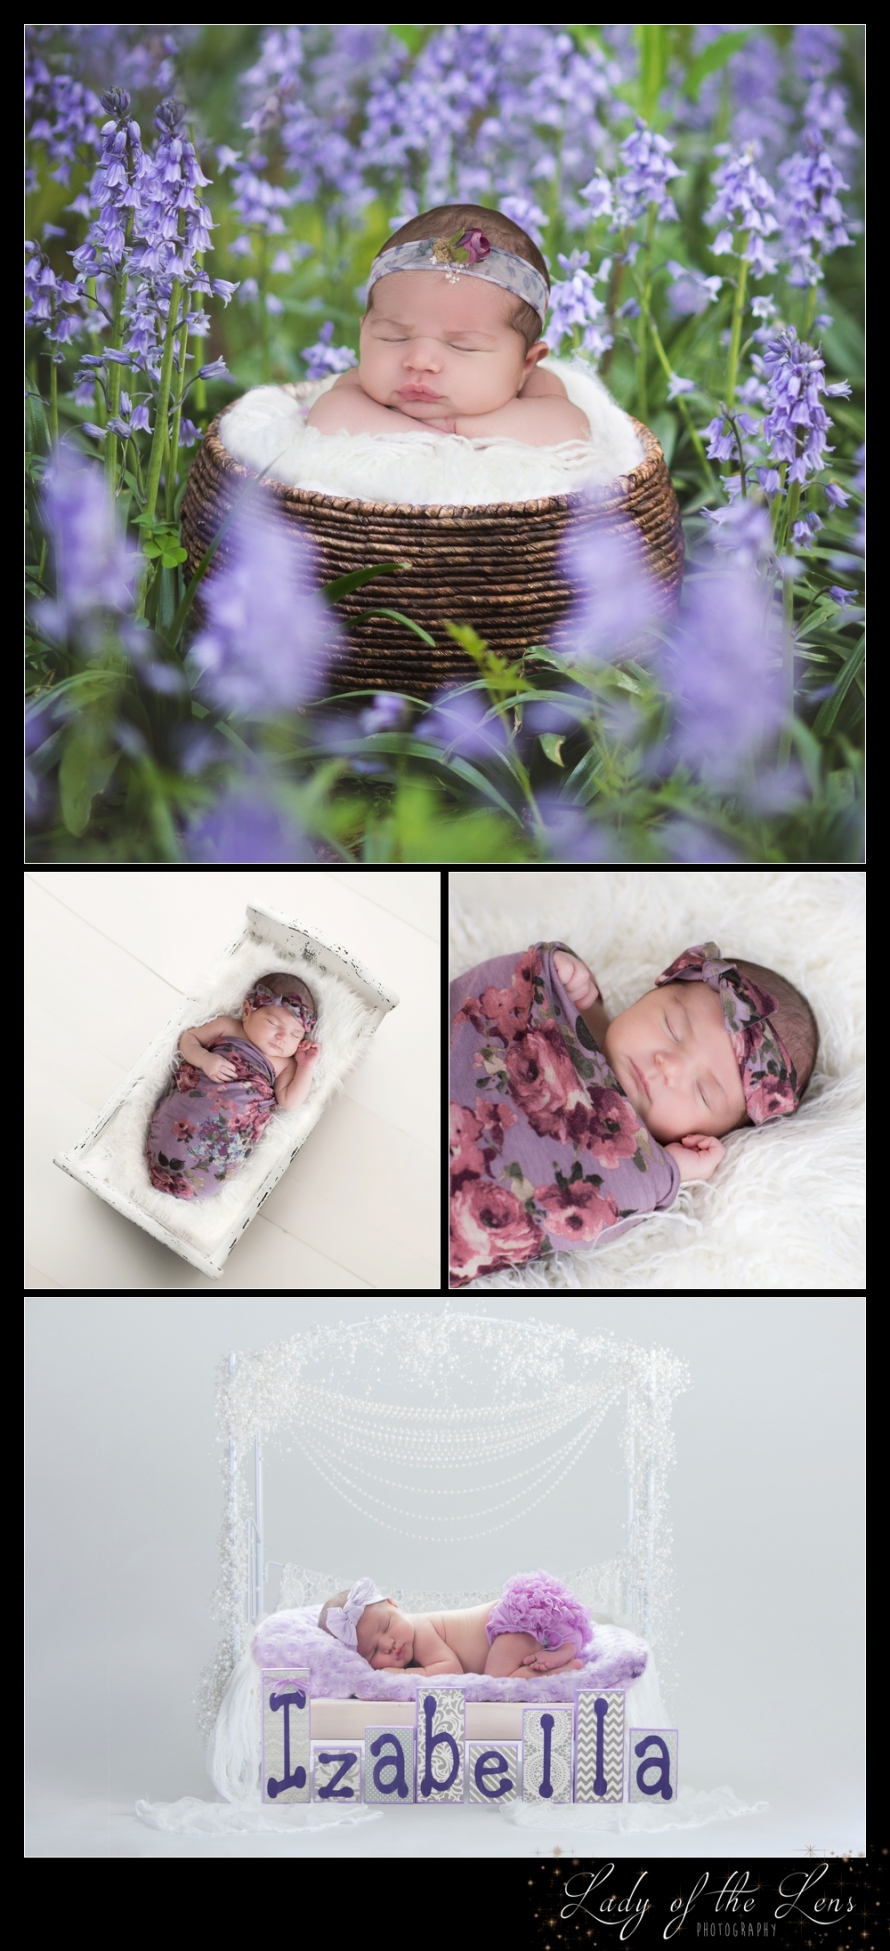 Filed in newborntagged in altoona pa baby flowers basket in field floral bed floral wrap johnstown pa newborn photographer newborn